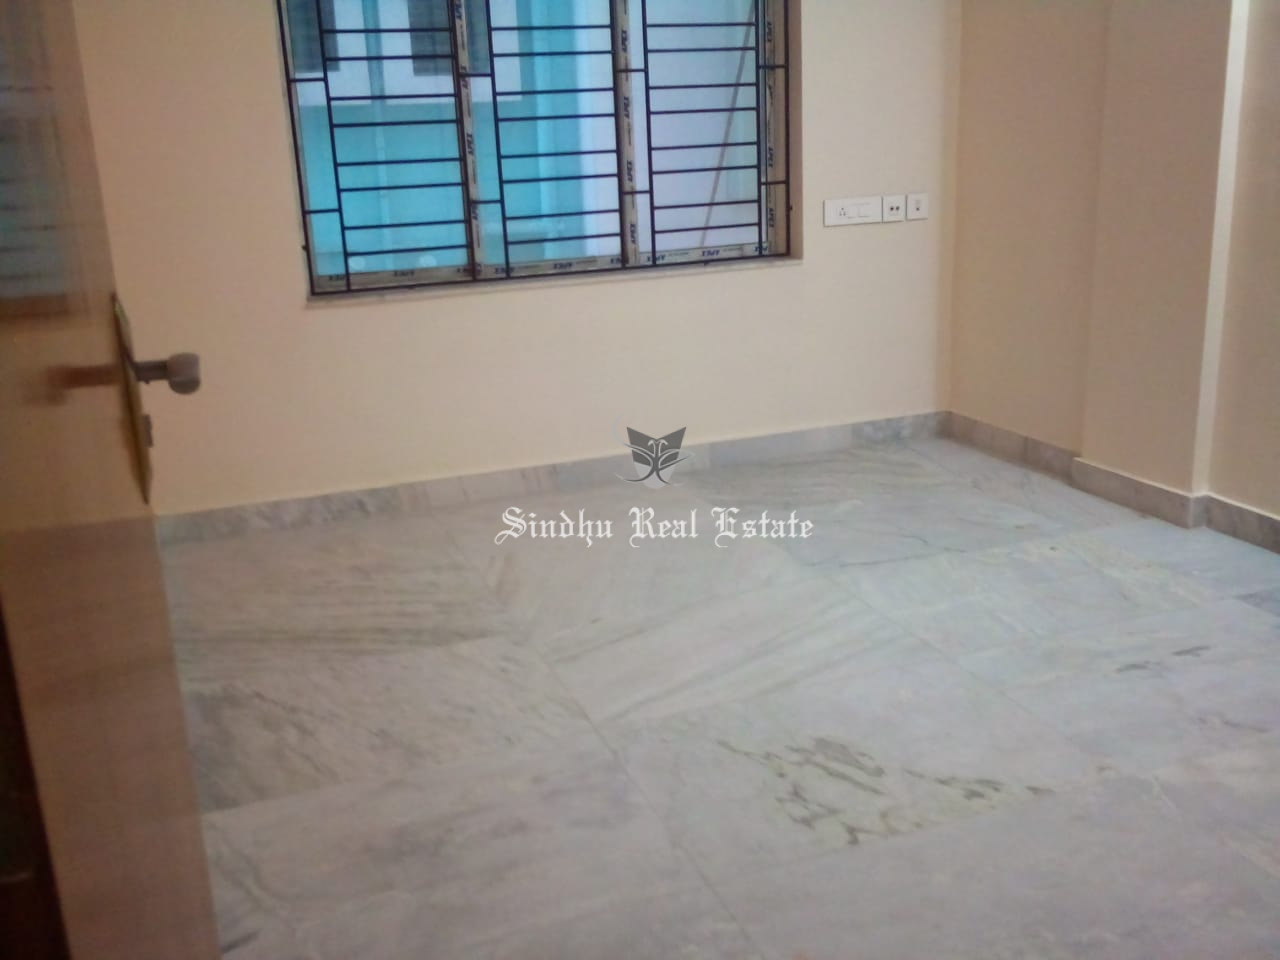 Rent 2 BHK flat at New town action area 1